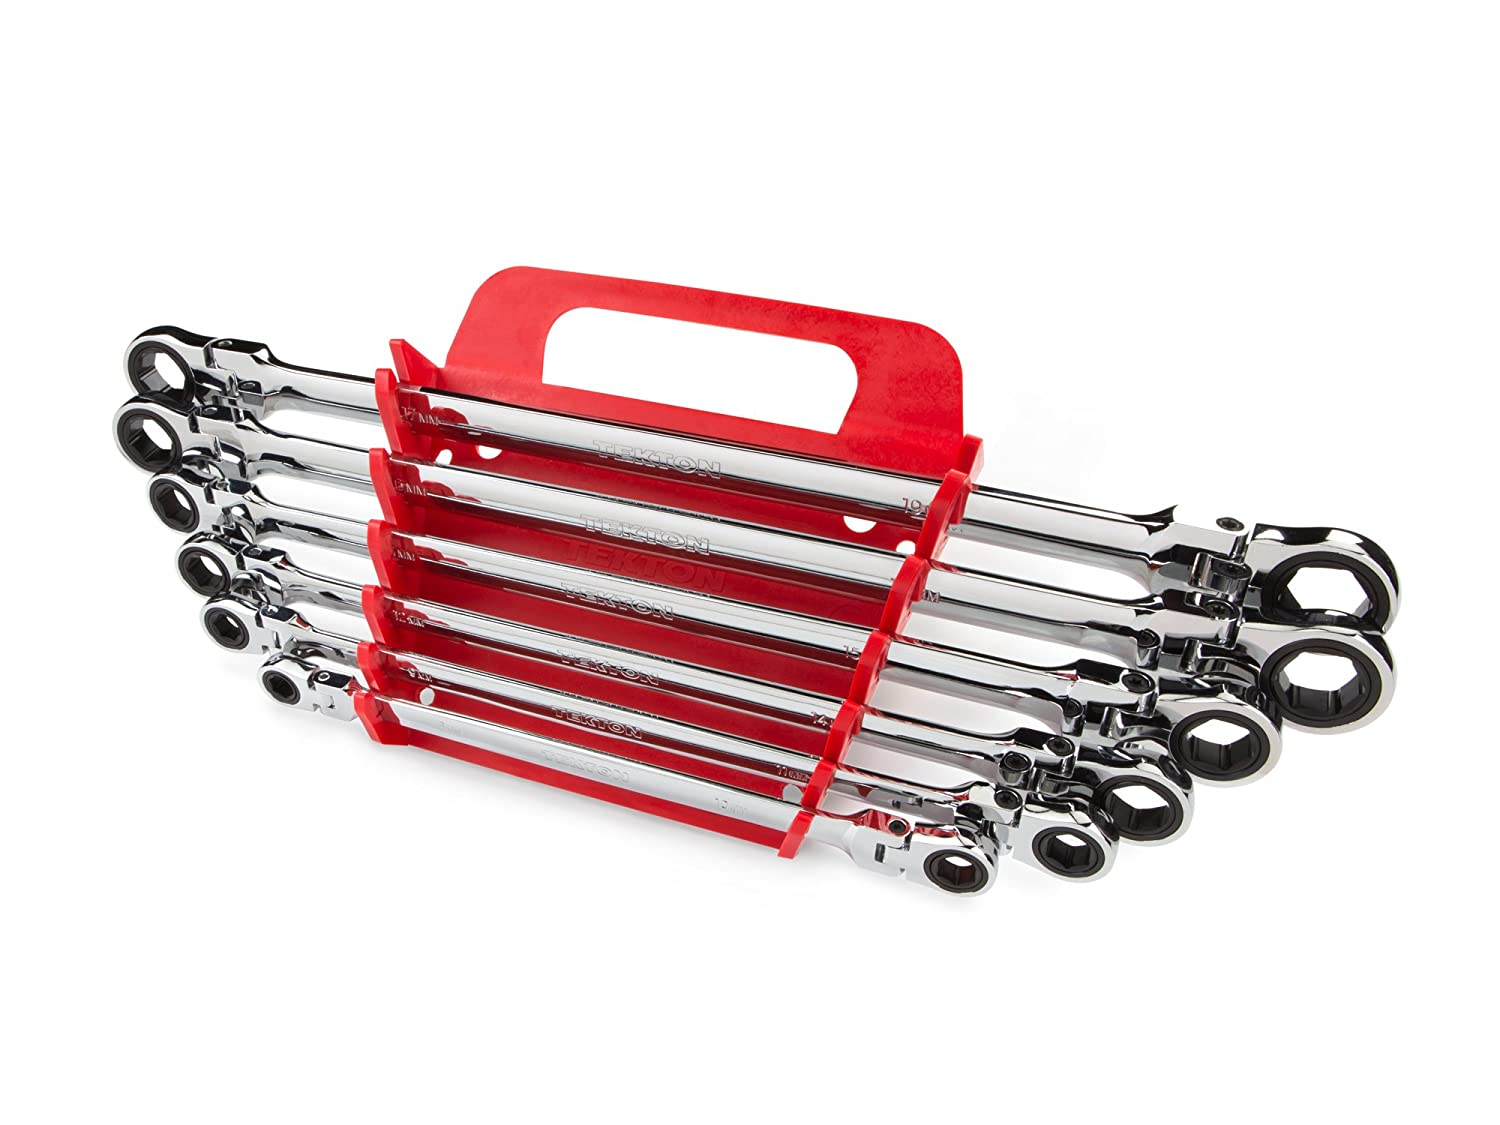 Tekton Wrn77164 Extra Long Flex Head Ratcheting Box End Wrench Set